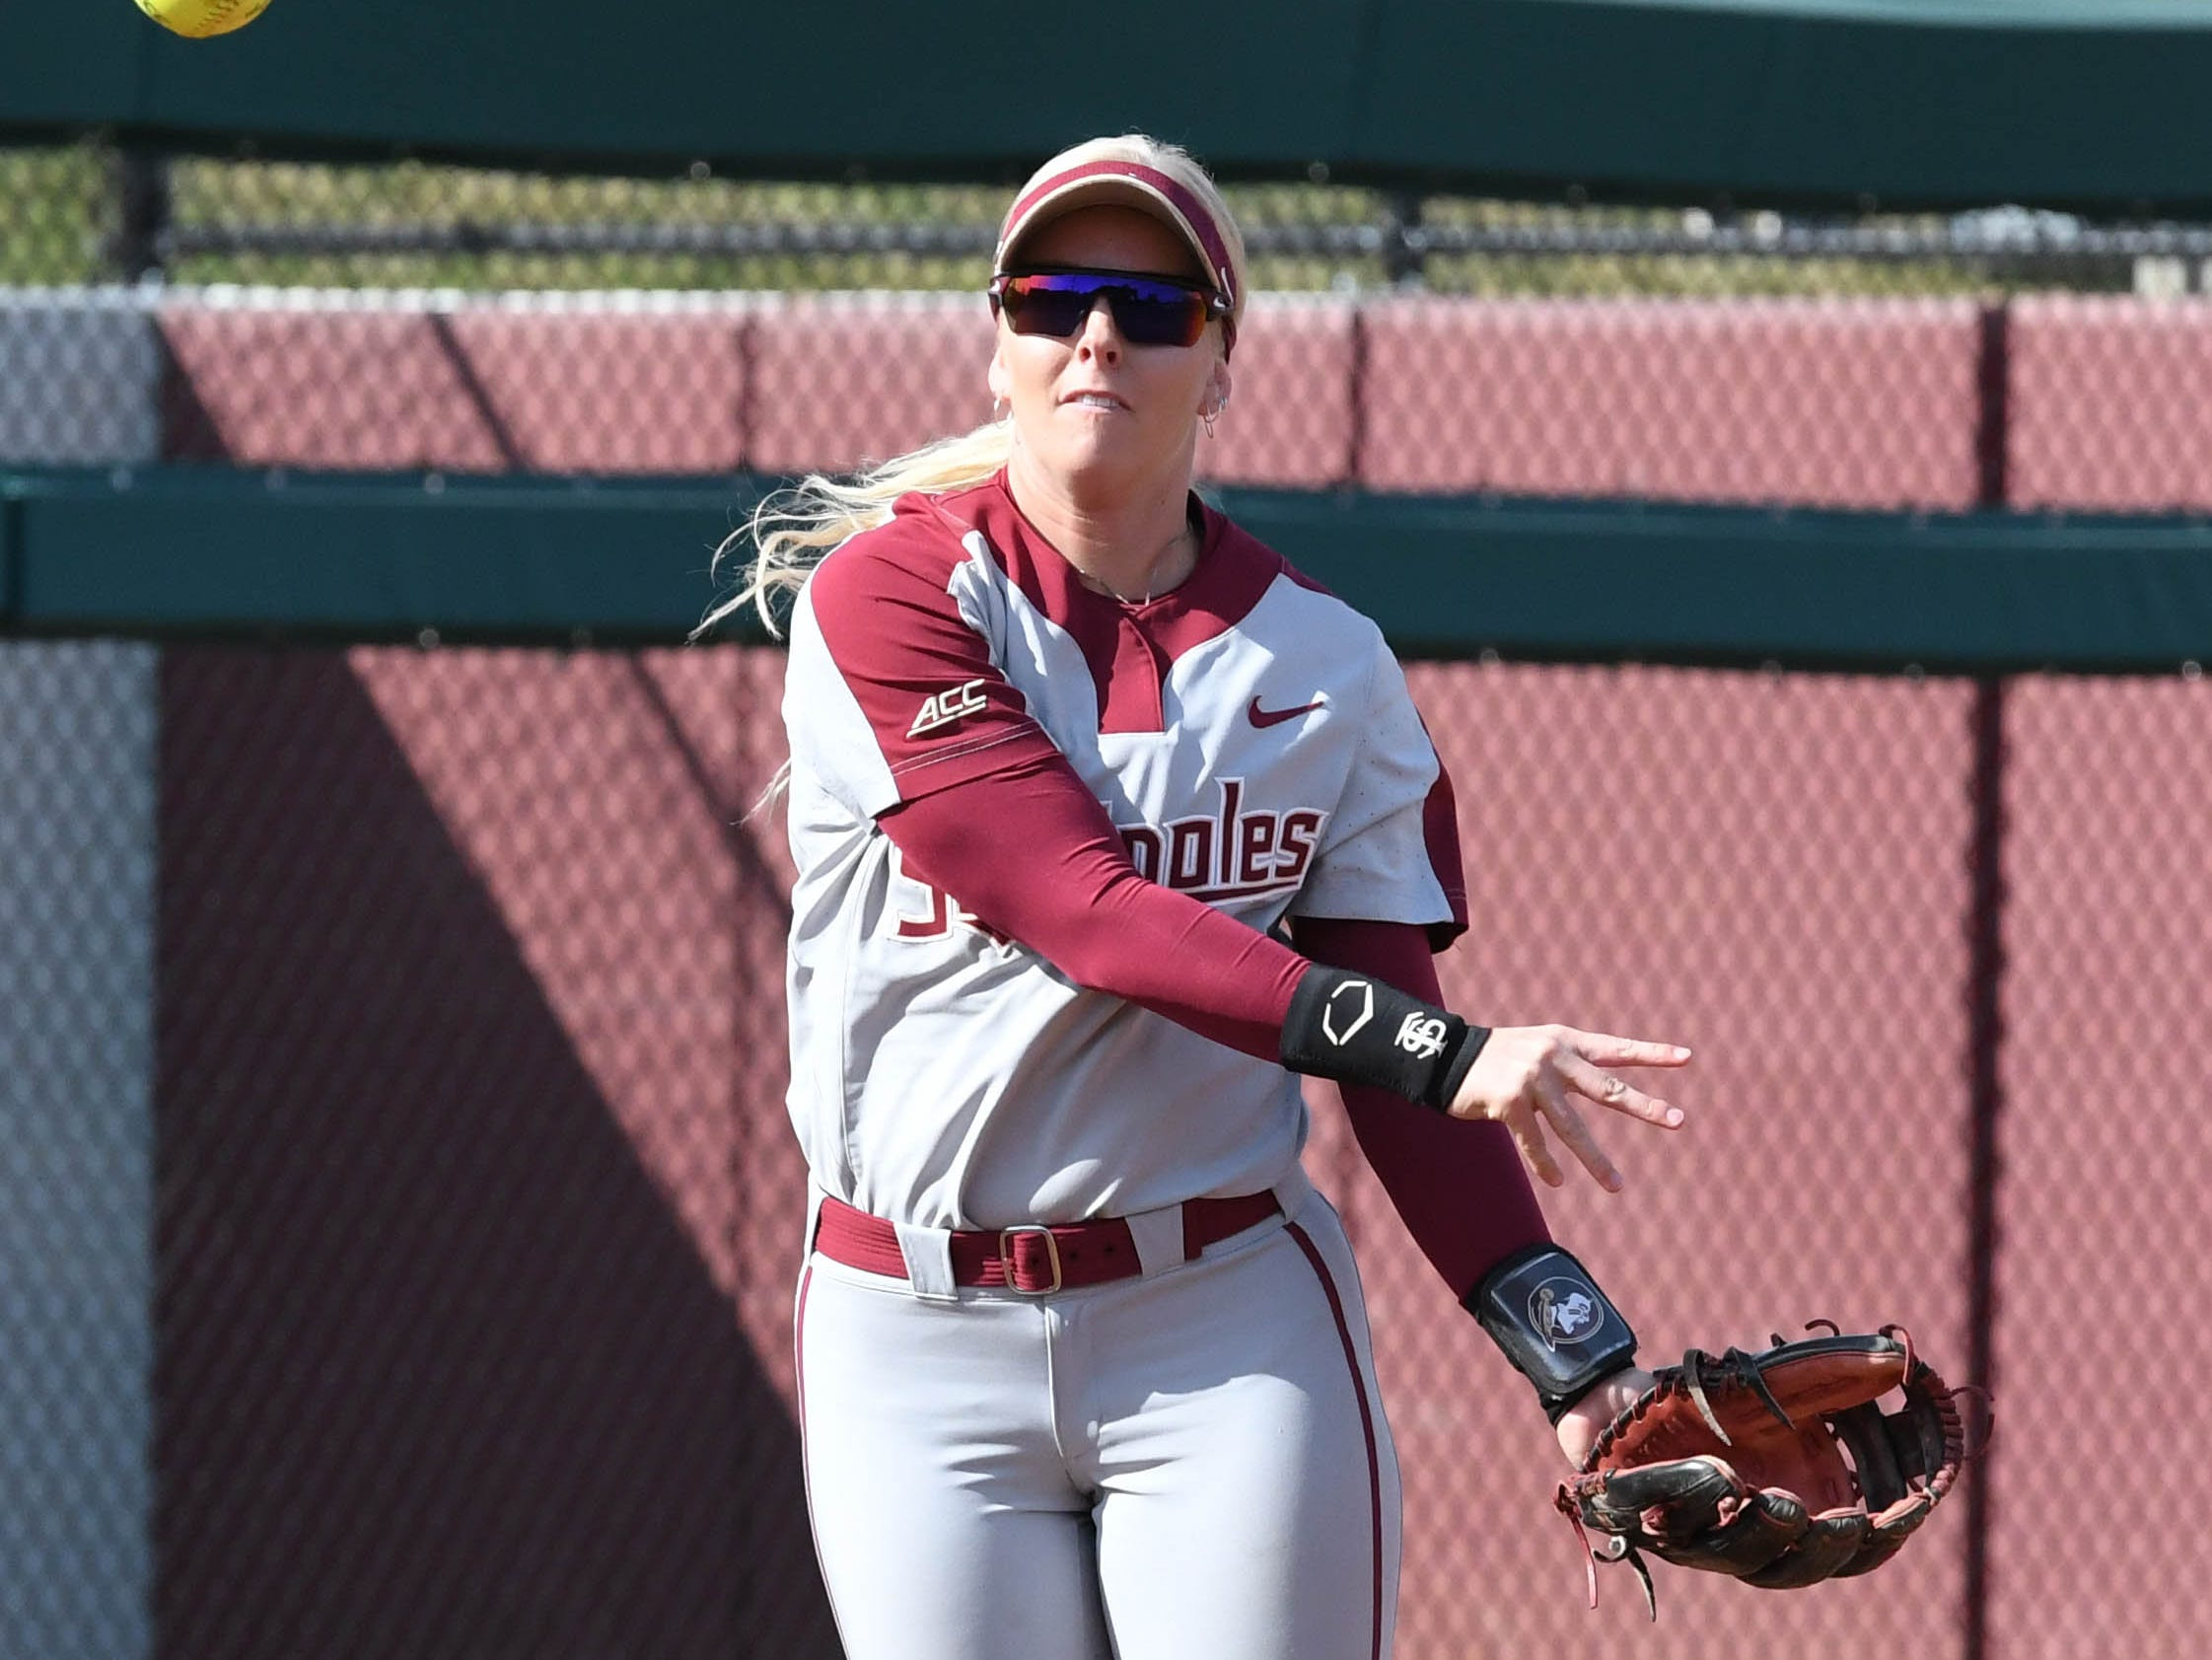 FSU sophomore infielder Sydney Sherril grounding the ball in the fourth inning of FSU's game against UNCG at Joanne Graf field on February 9, 2019.